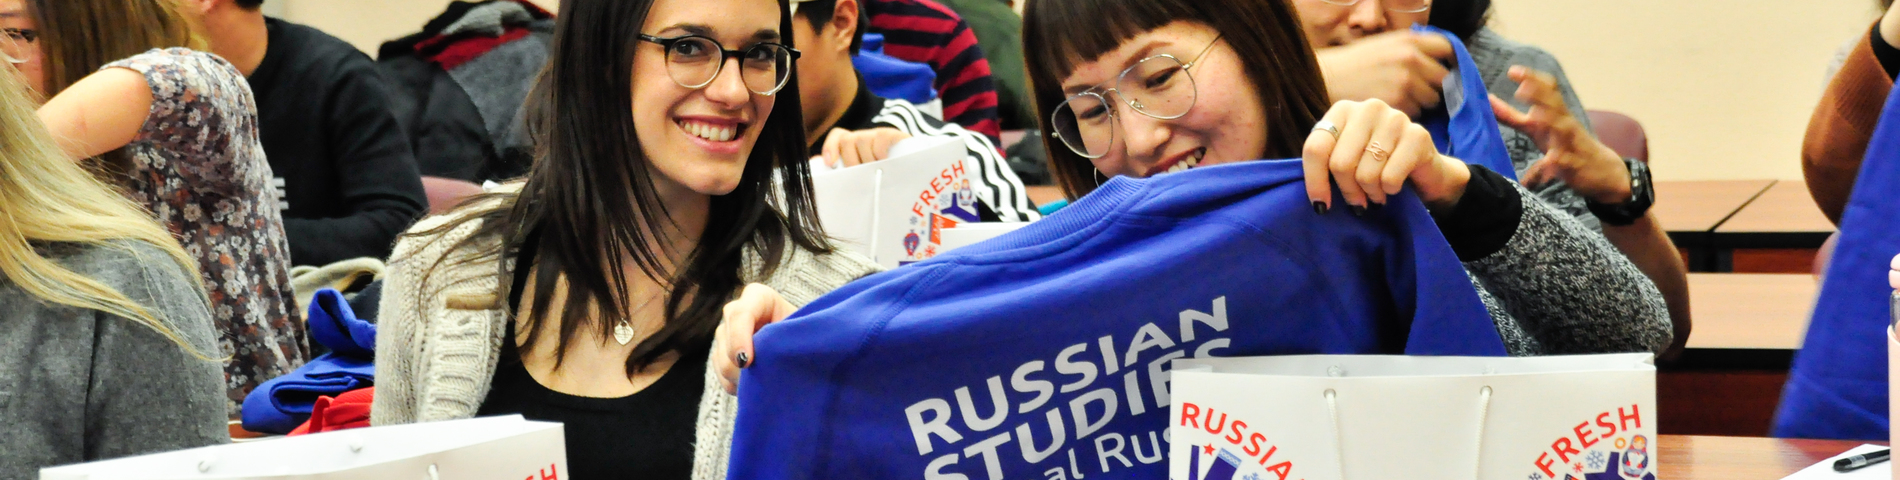 Russian Studies in Real Russia picture 1